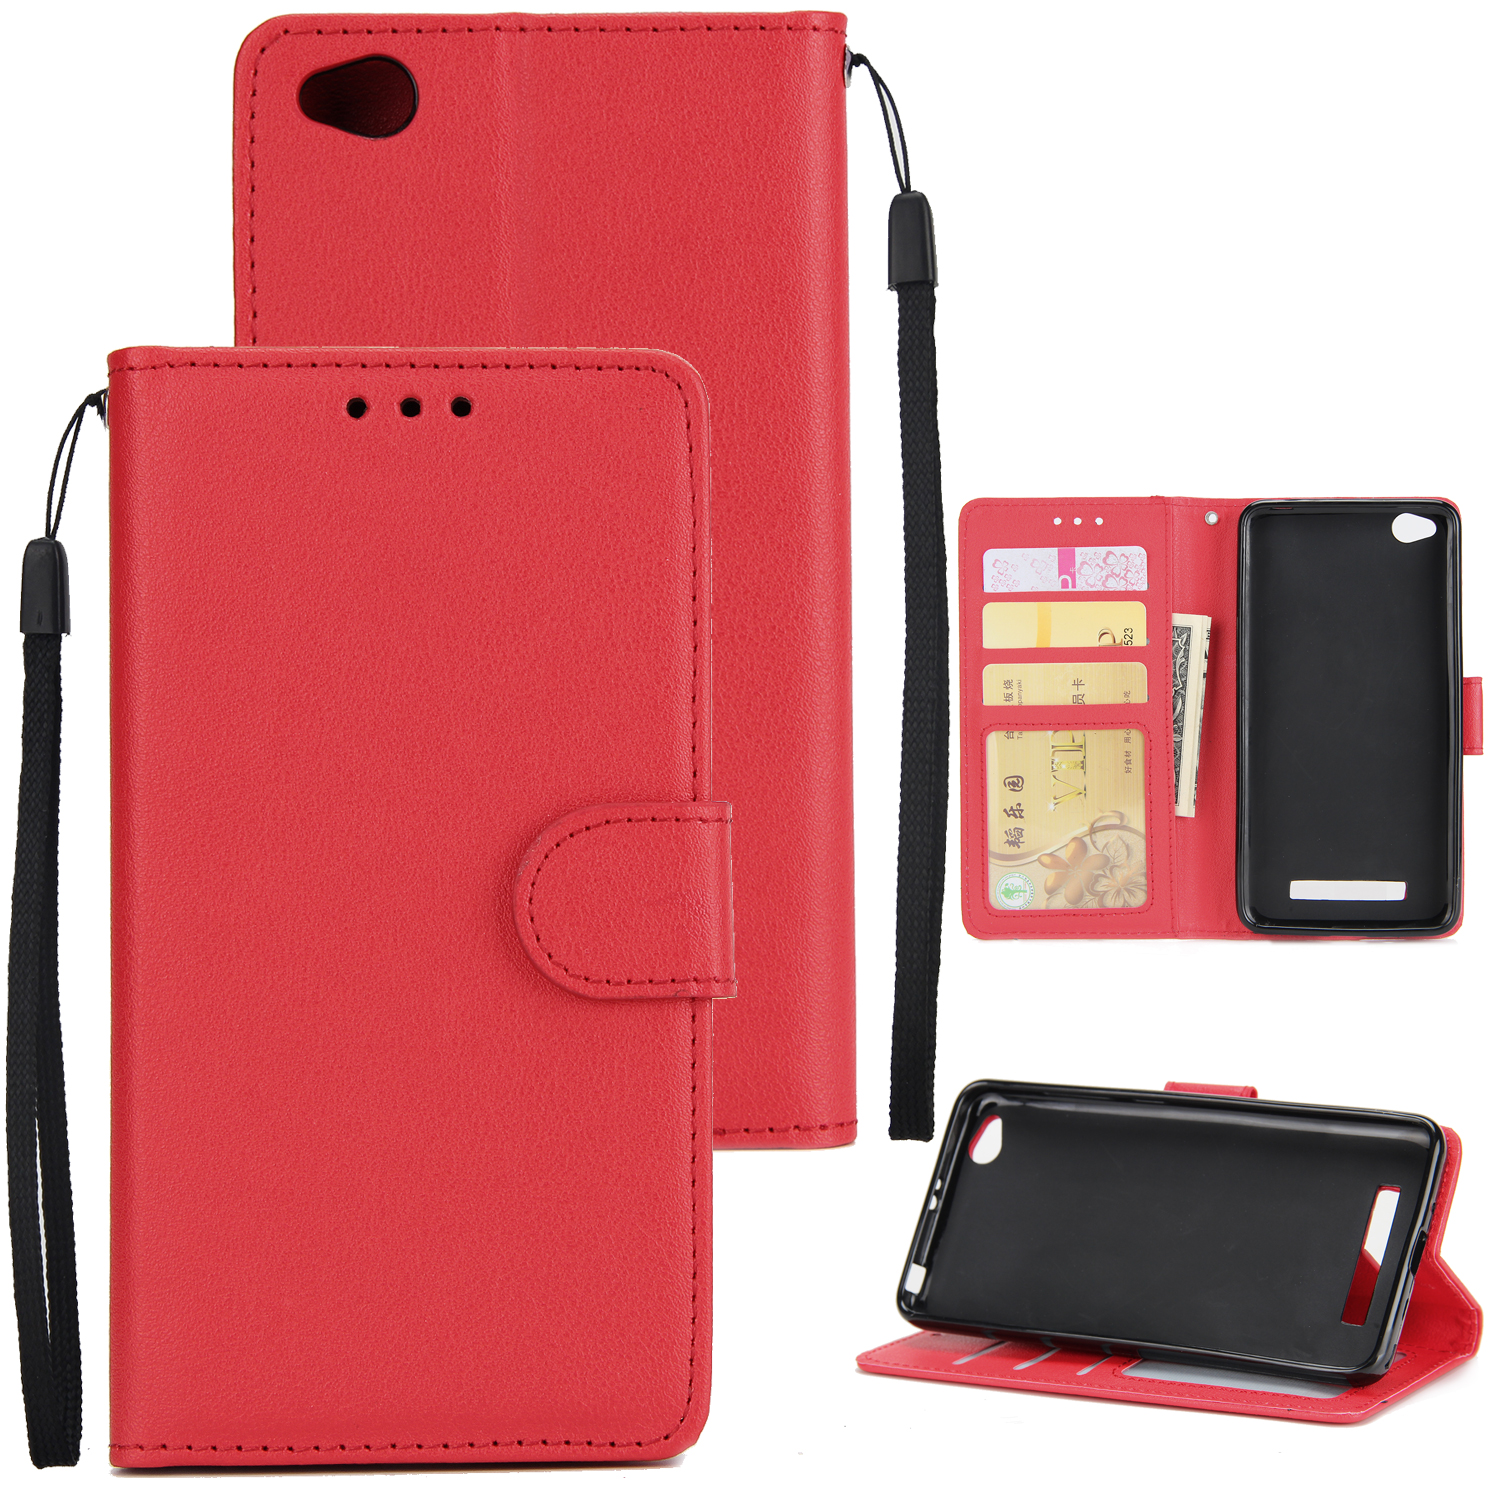 Ultra Slim Shockproof Full Protective Case with Card Wallet Slot for Xiaomi Redmi 5A red